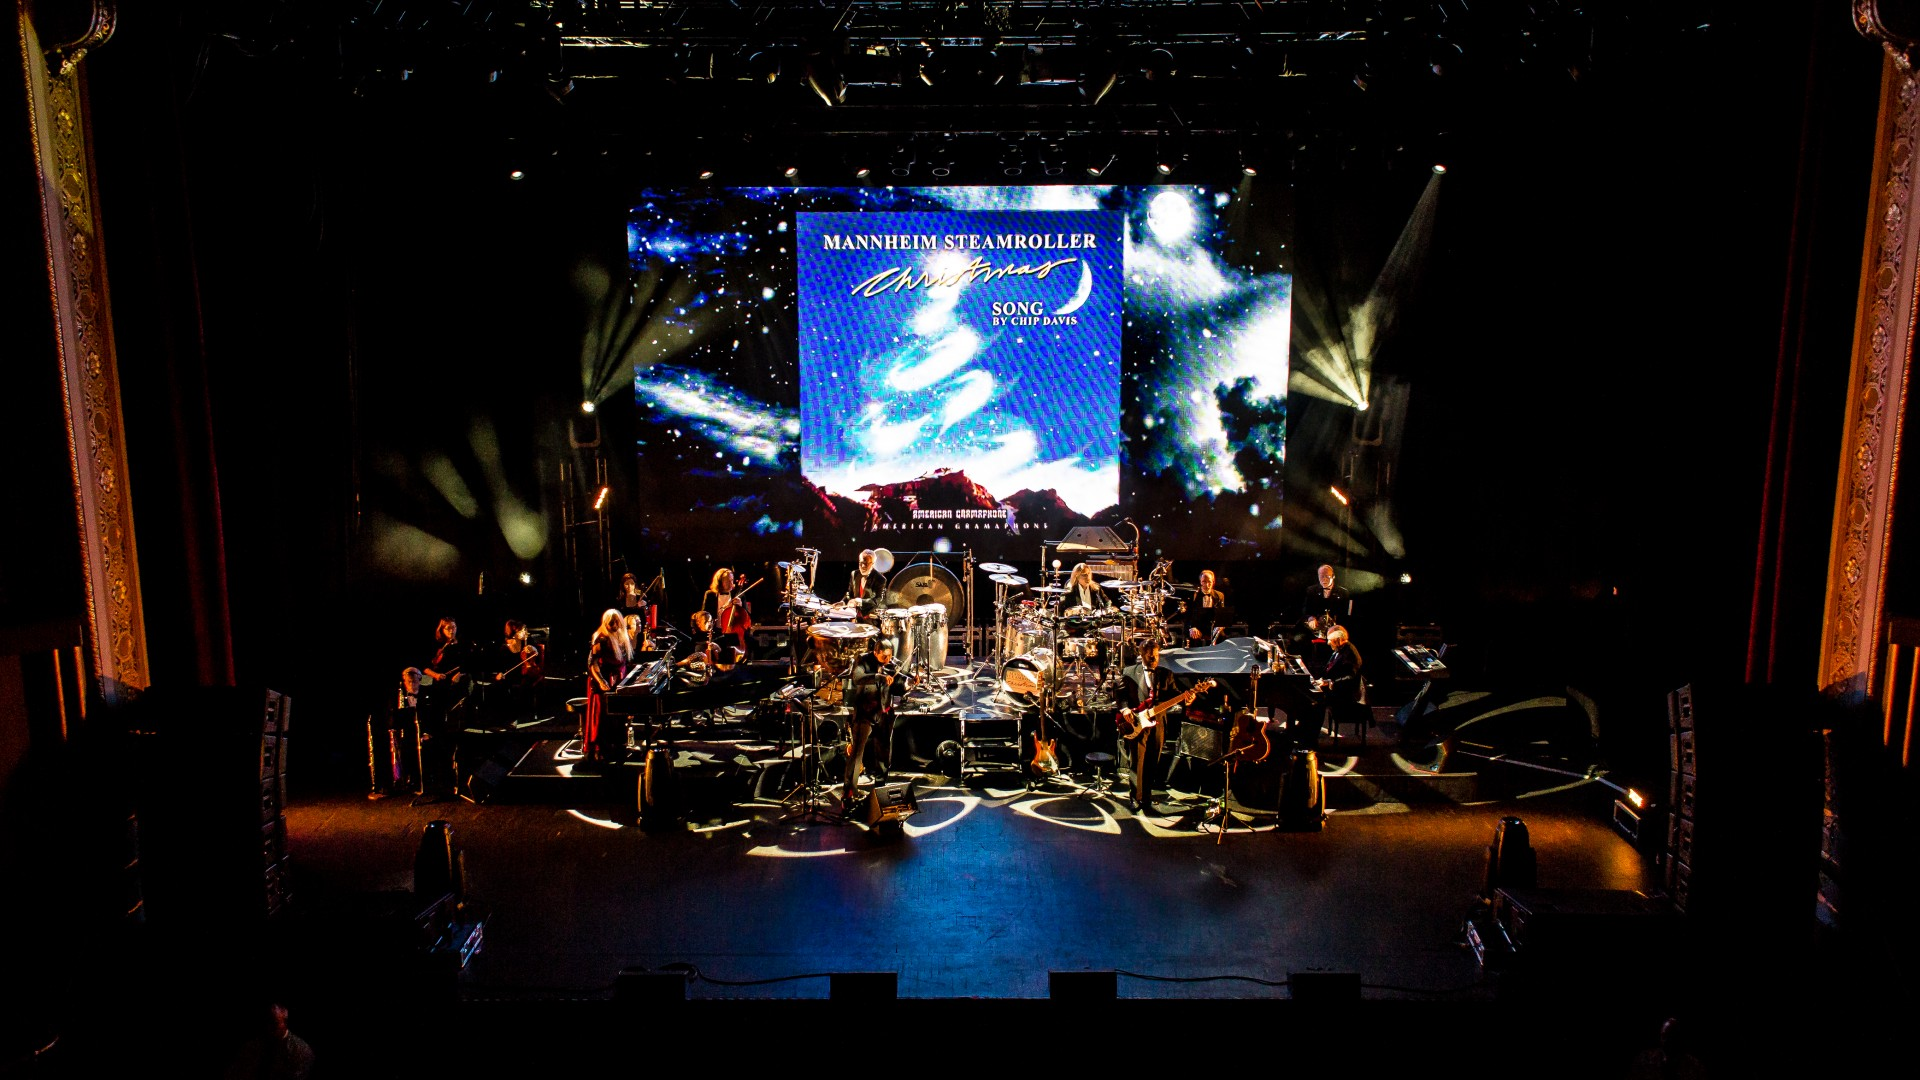 Mannheim Steamroller to Come to Hershey Theatre